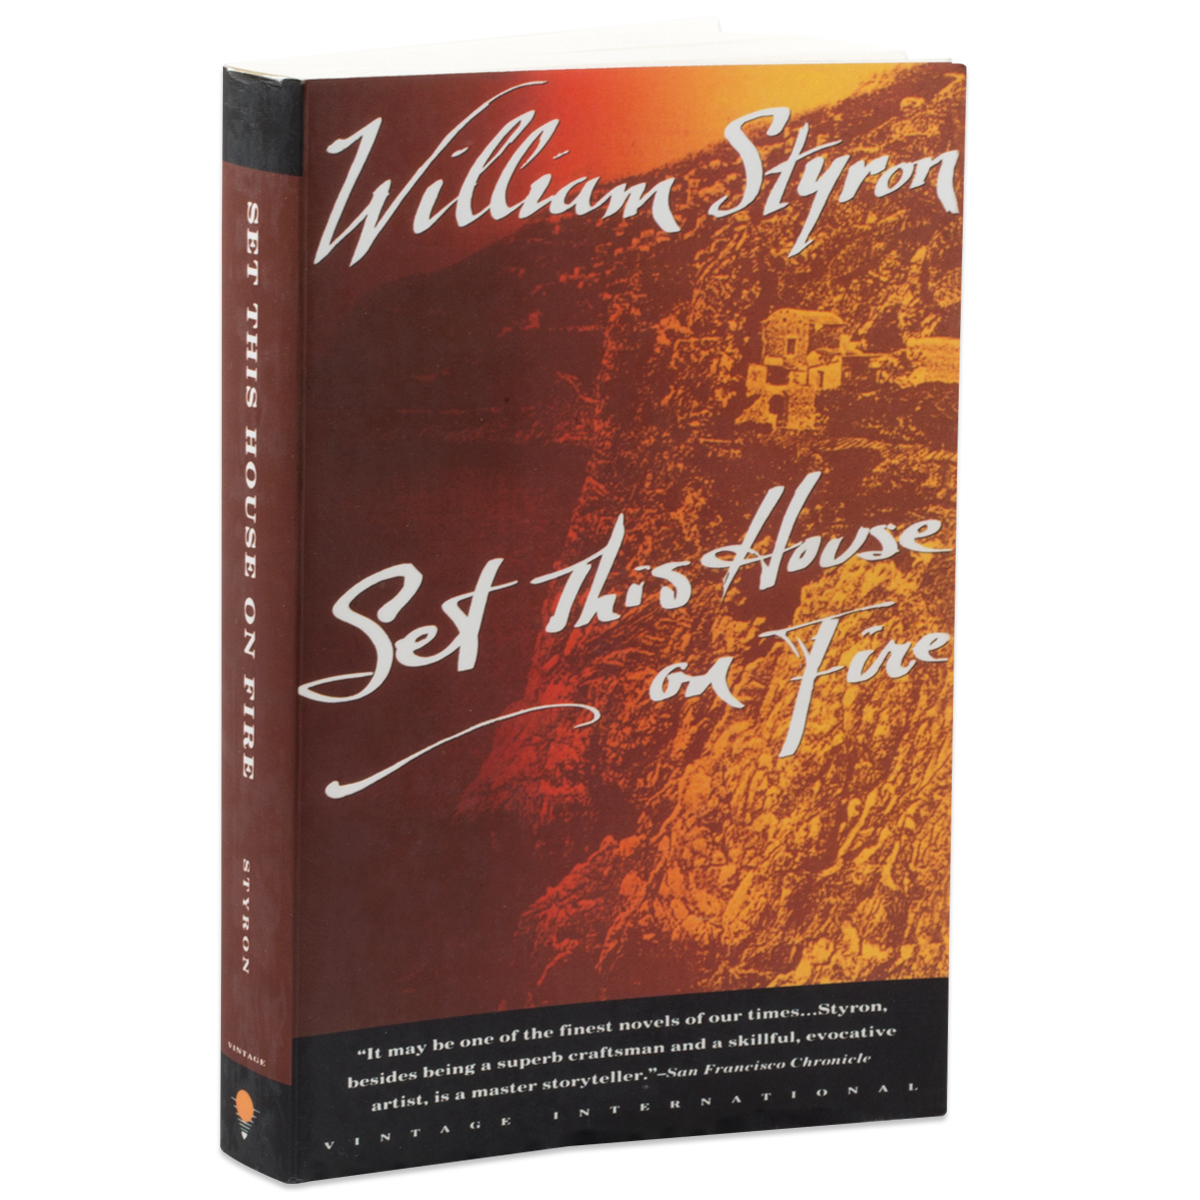 Set this House on Fire by William Styron